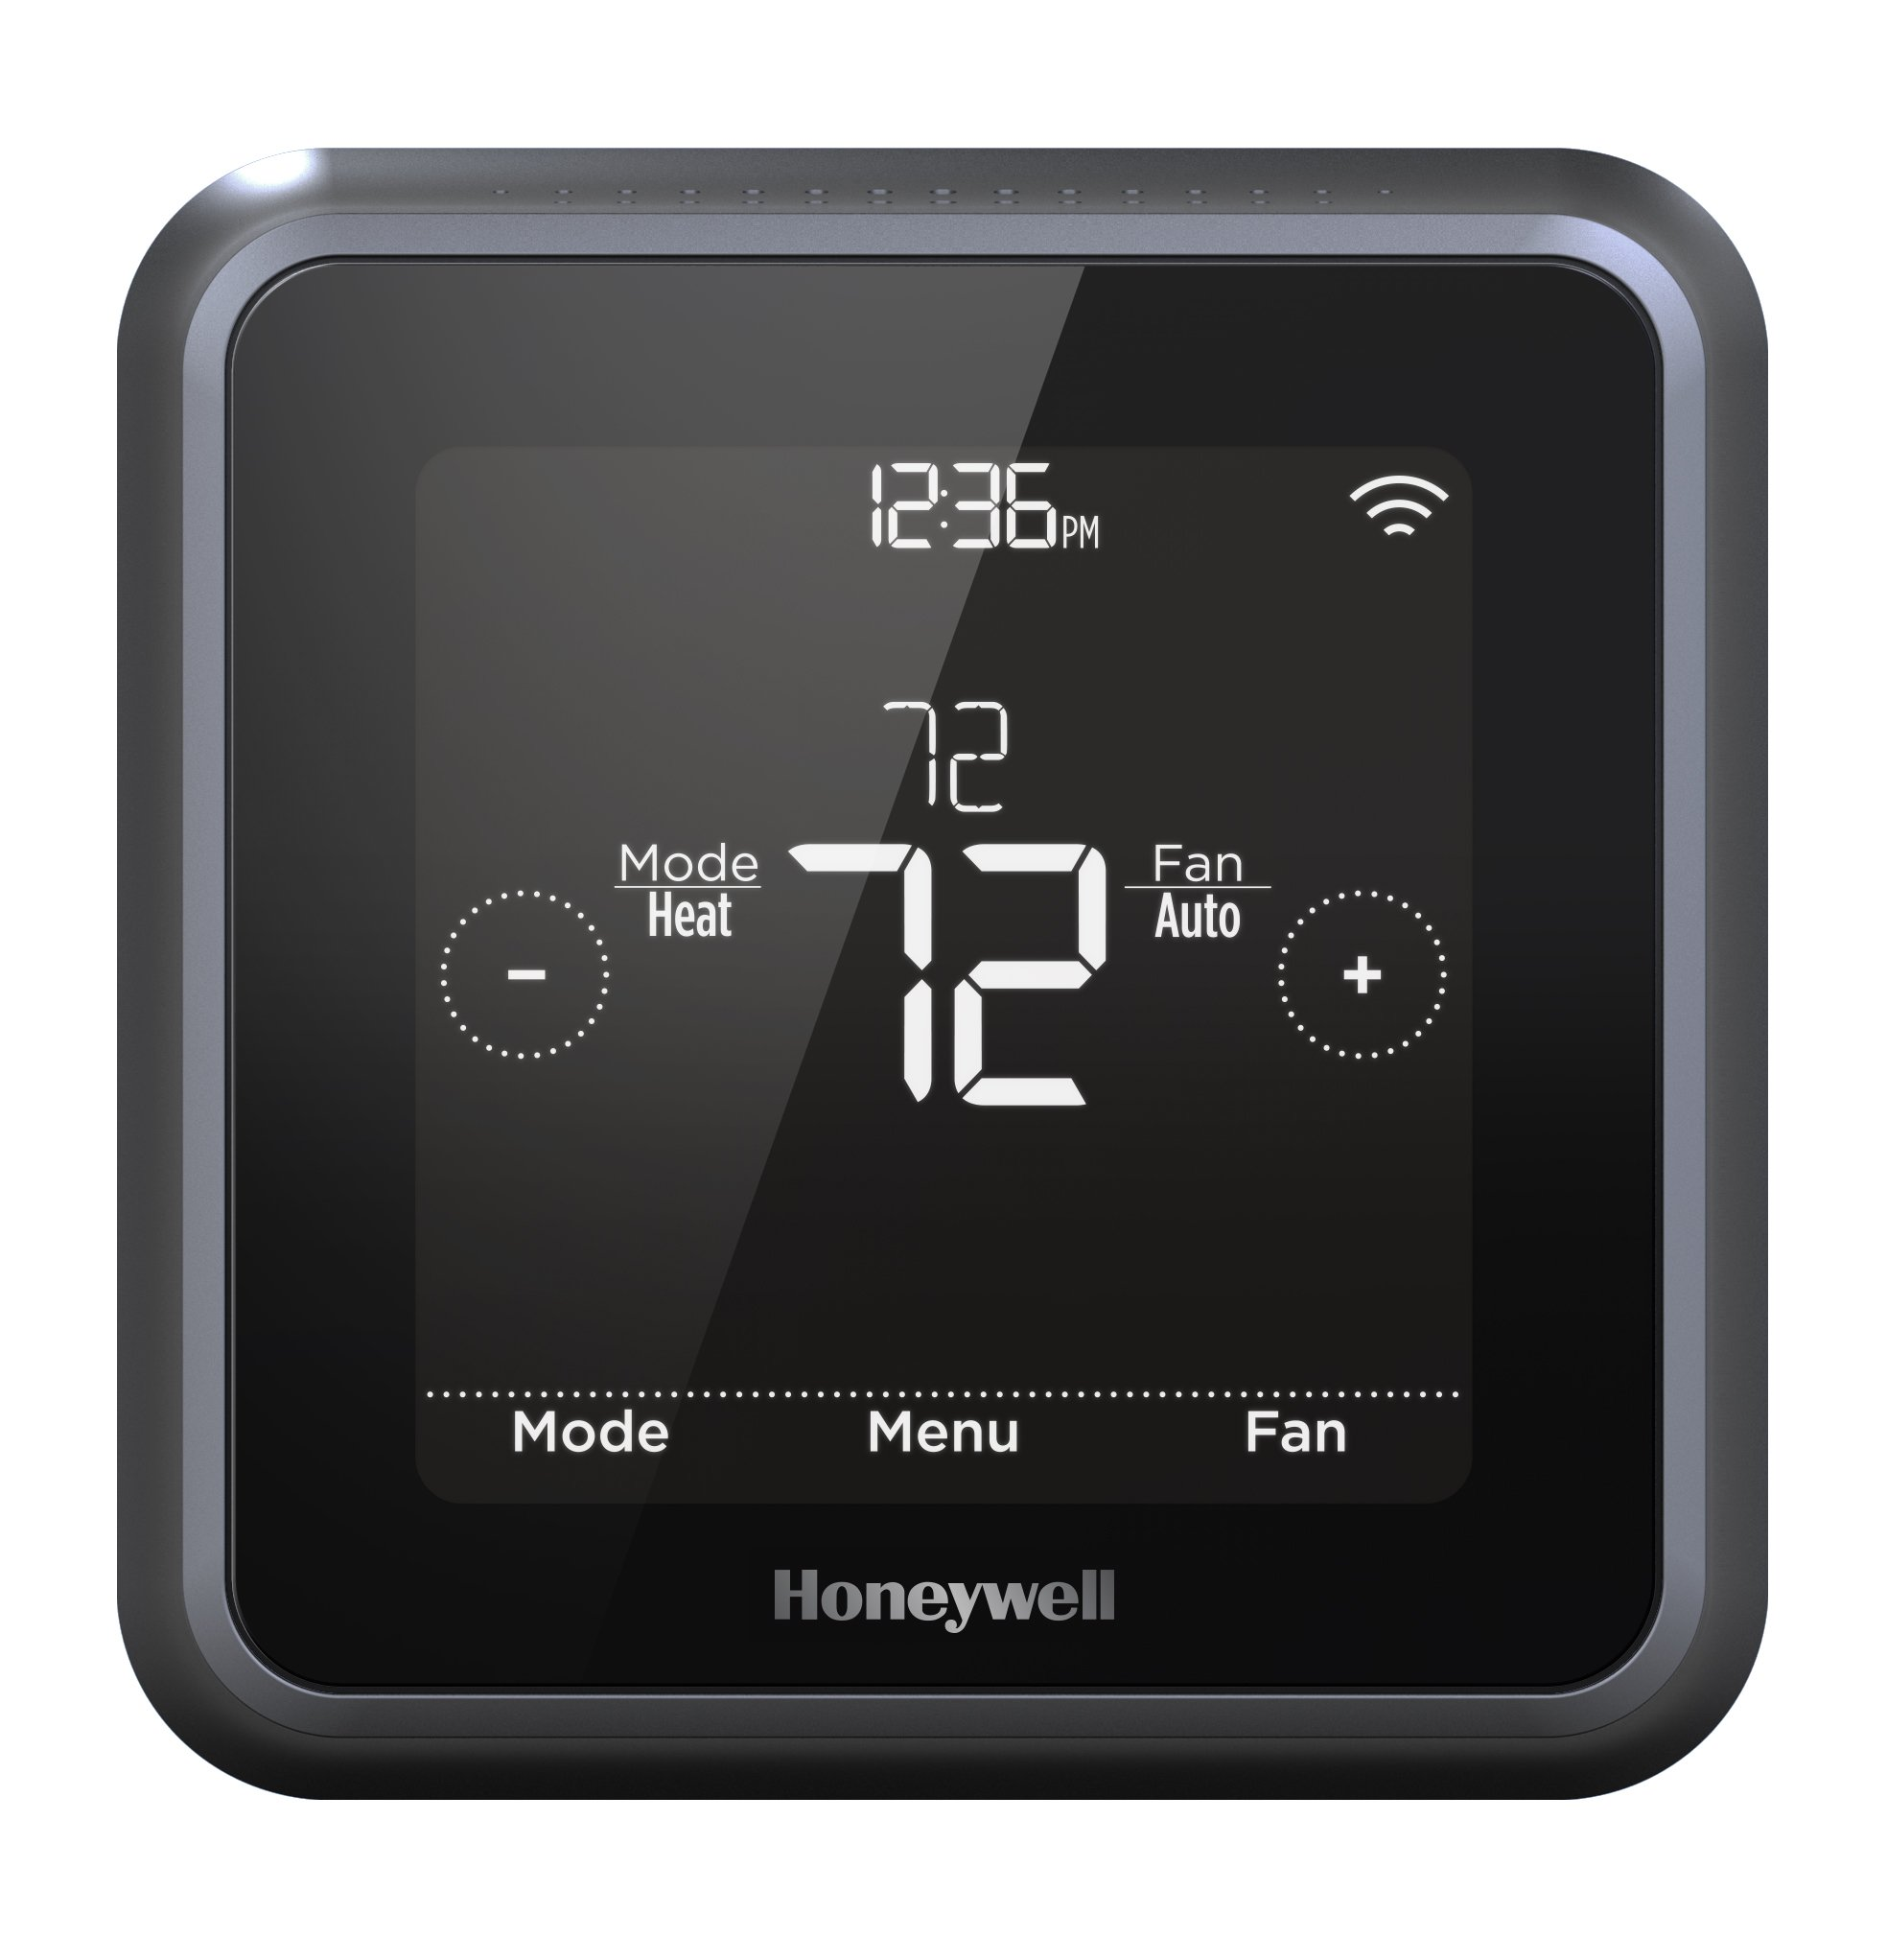 Honeywell Home RCHT8612WF T5 Plus Wi-Fi Touchscreen Smart Thermostat            w/ 7 Day flexible programming and Geofencing Technology by Honeywell